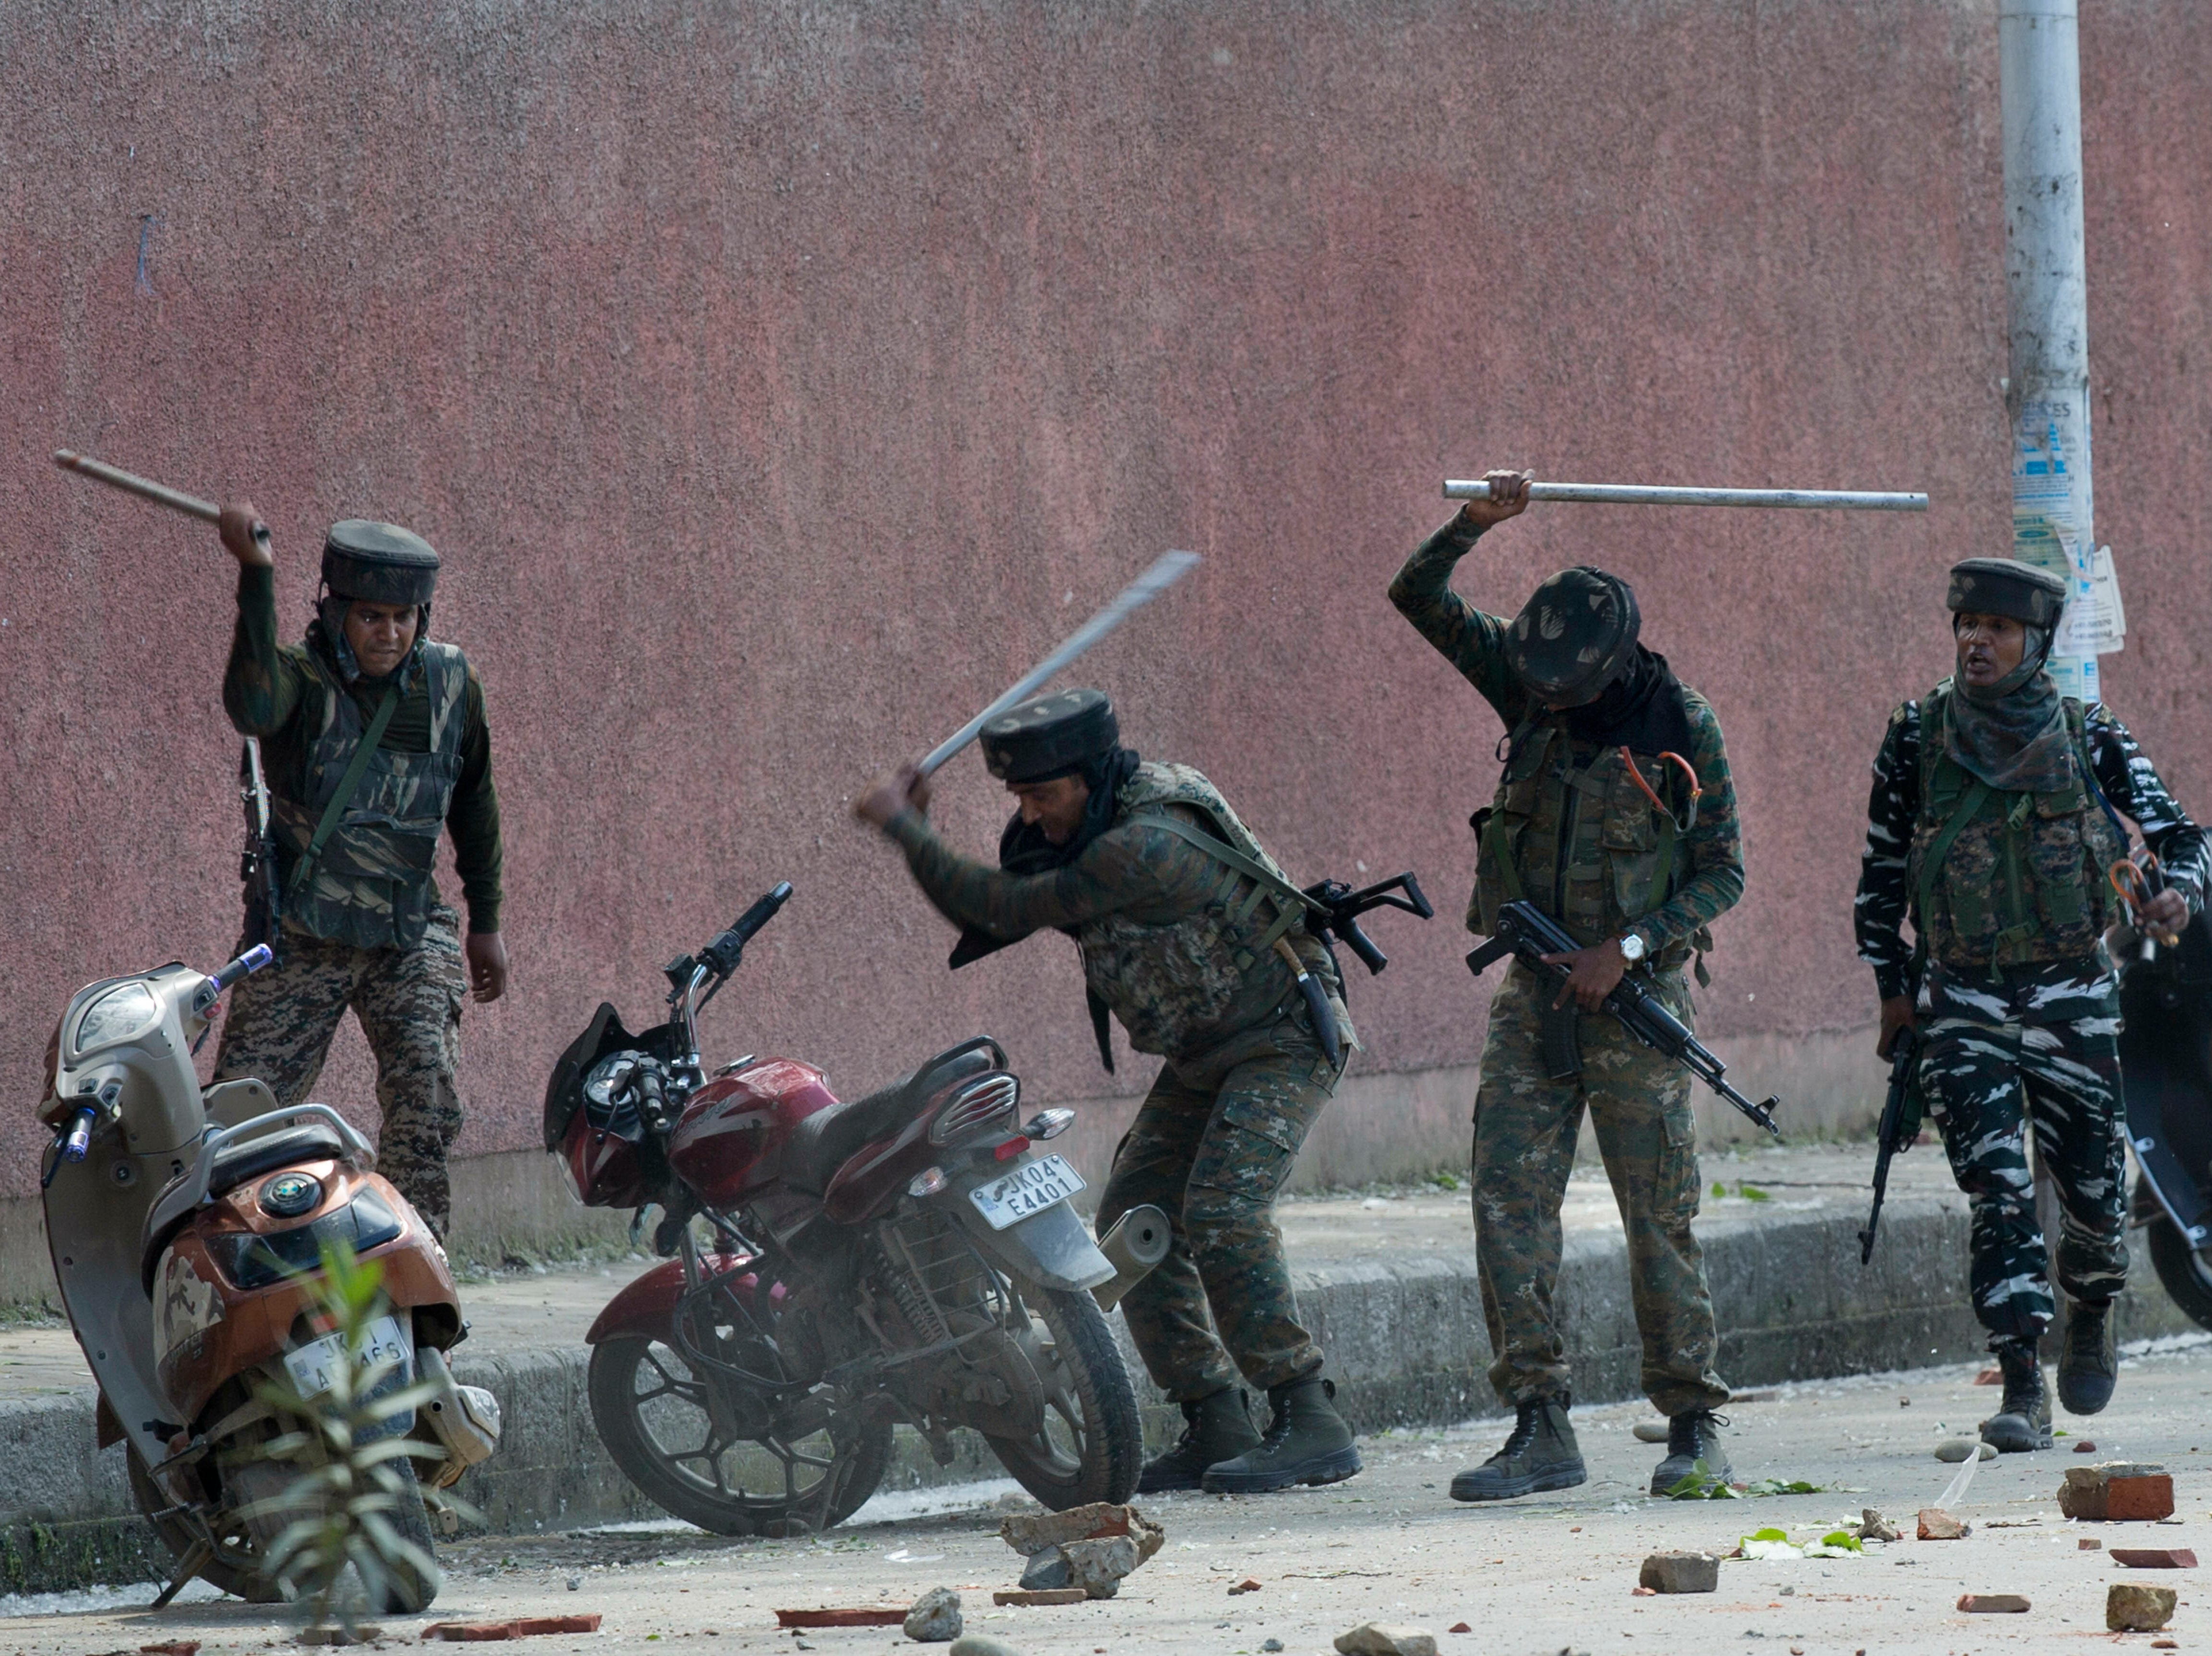 Indian paramilitary soldiers break two wheelers parked outside a college as they clash with students protesting against the alleged rape of a 3-year-old girl in Srinagar, Indian controlled Kashmir, Tuesday, May 14, 2019. Protests continued for the third day Tuesday even as government forces fired shotgun pellets and tear gas to stop stone-throwing protesters from marching.